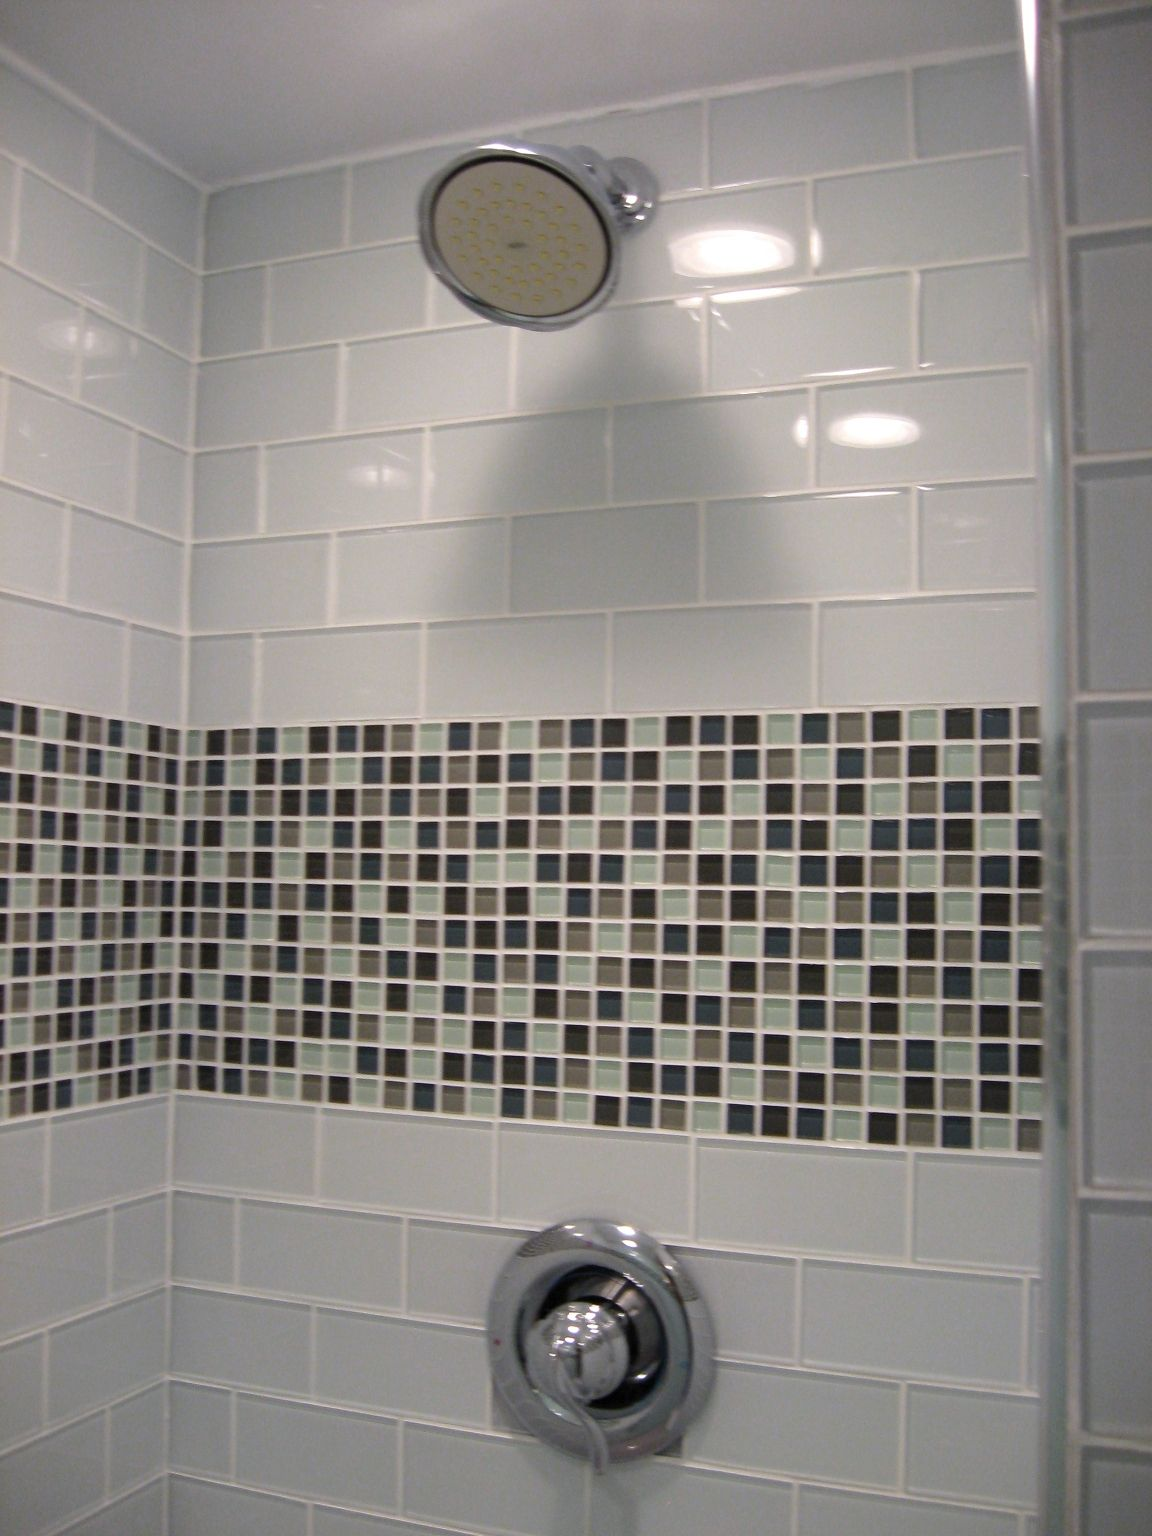 Azulejos Cristal Para Baño Subway Mosaic Mix Not These Colors Tiled Shower Baños